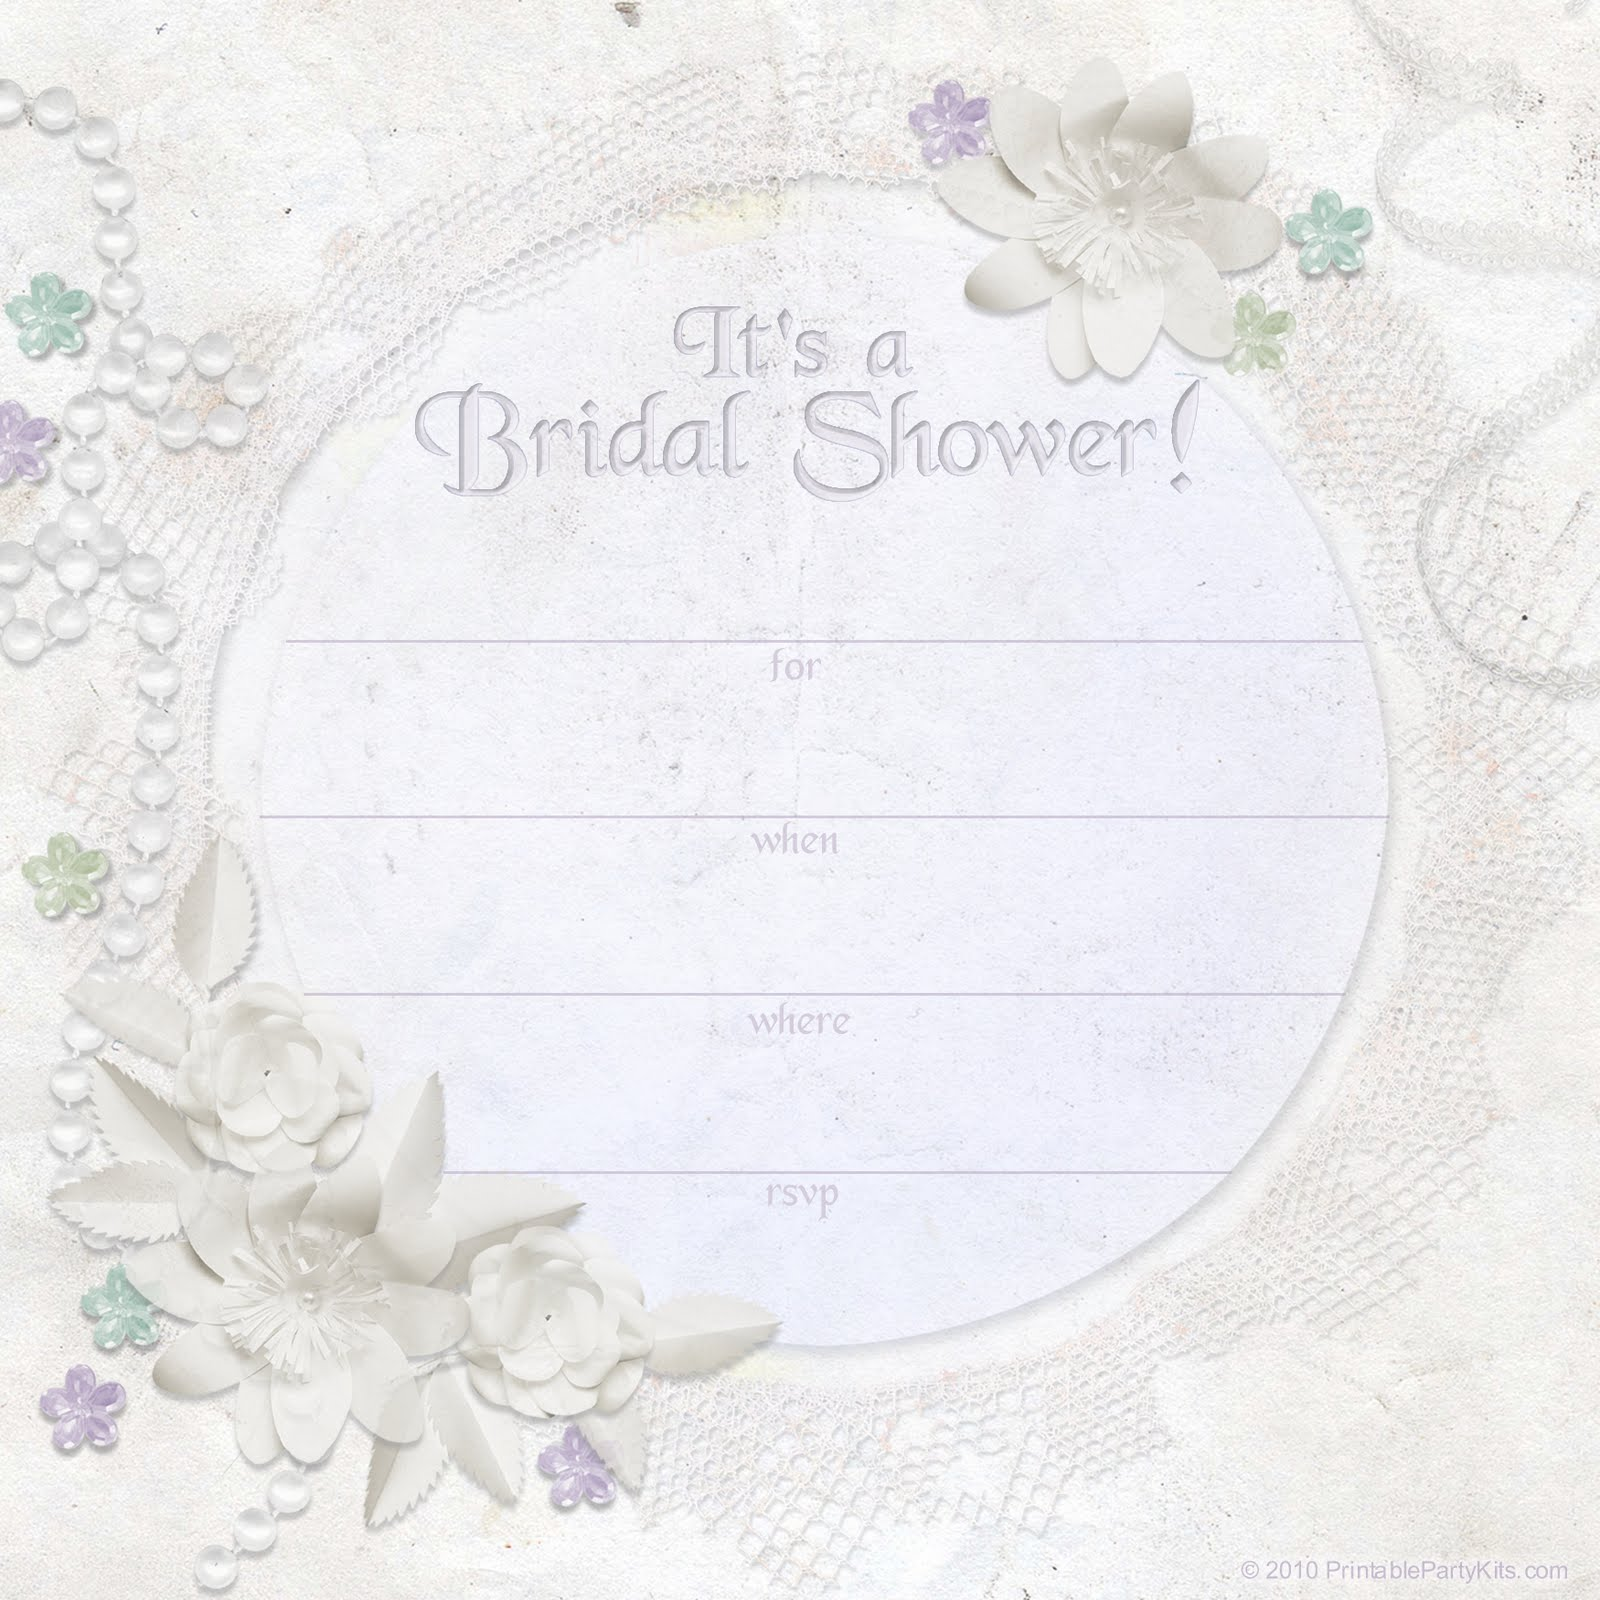 Free printable party invitations ivory dreams bridal shower click on the free bridal shower invitation to see it full size and download it filmwisefo